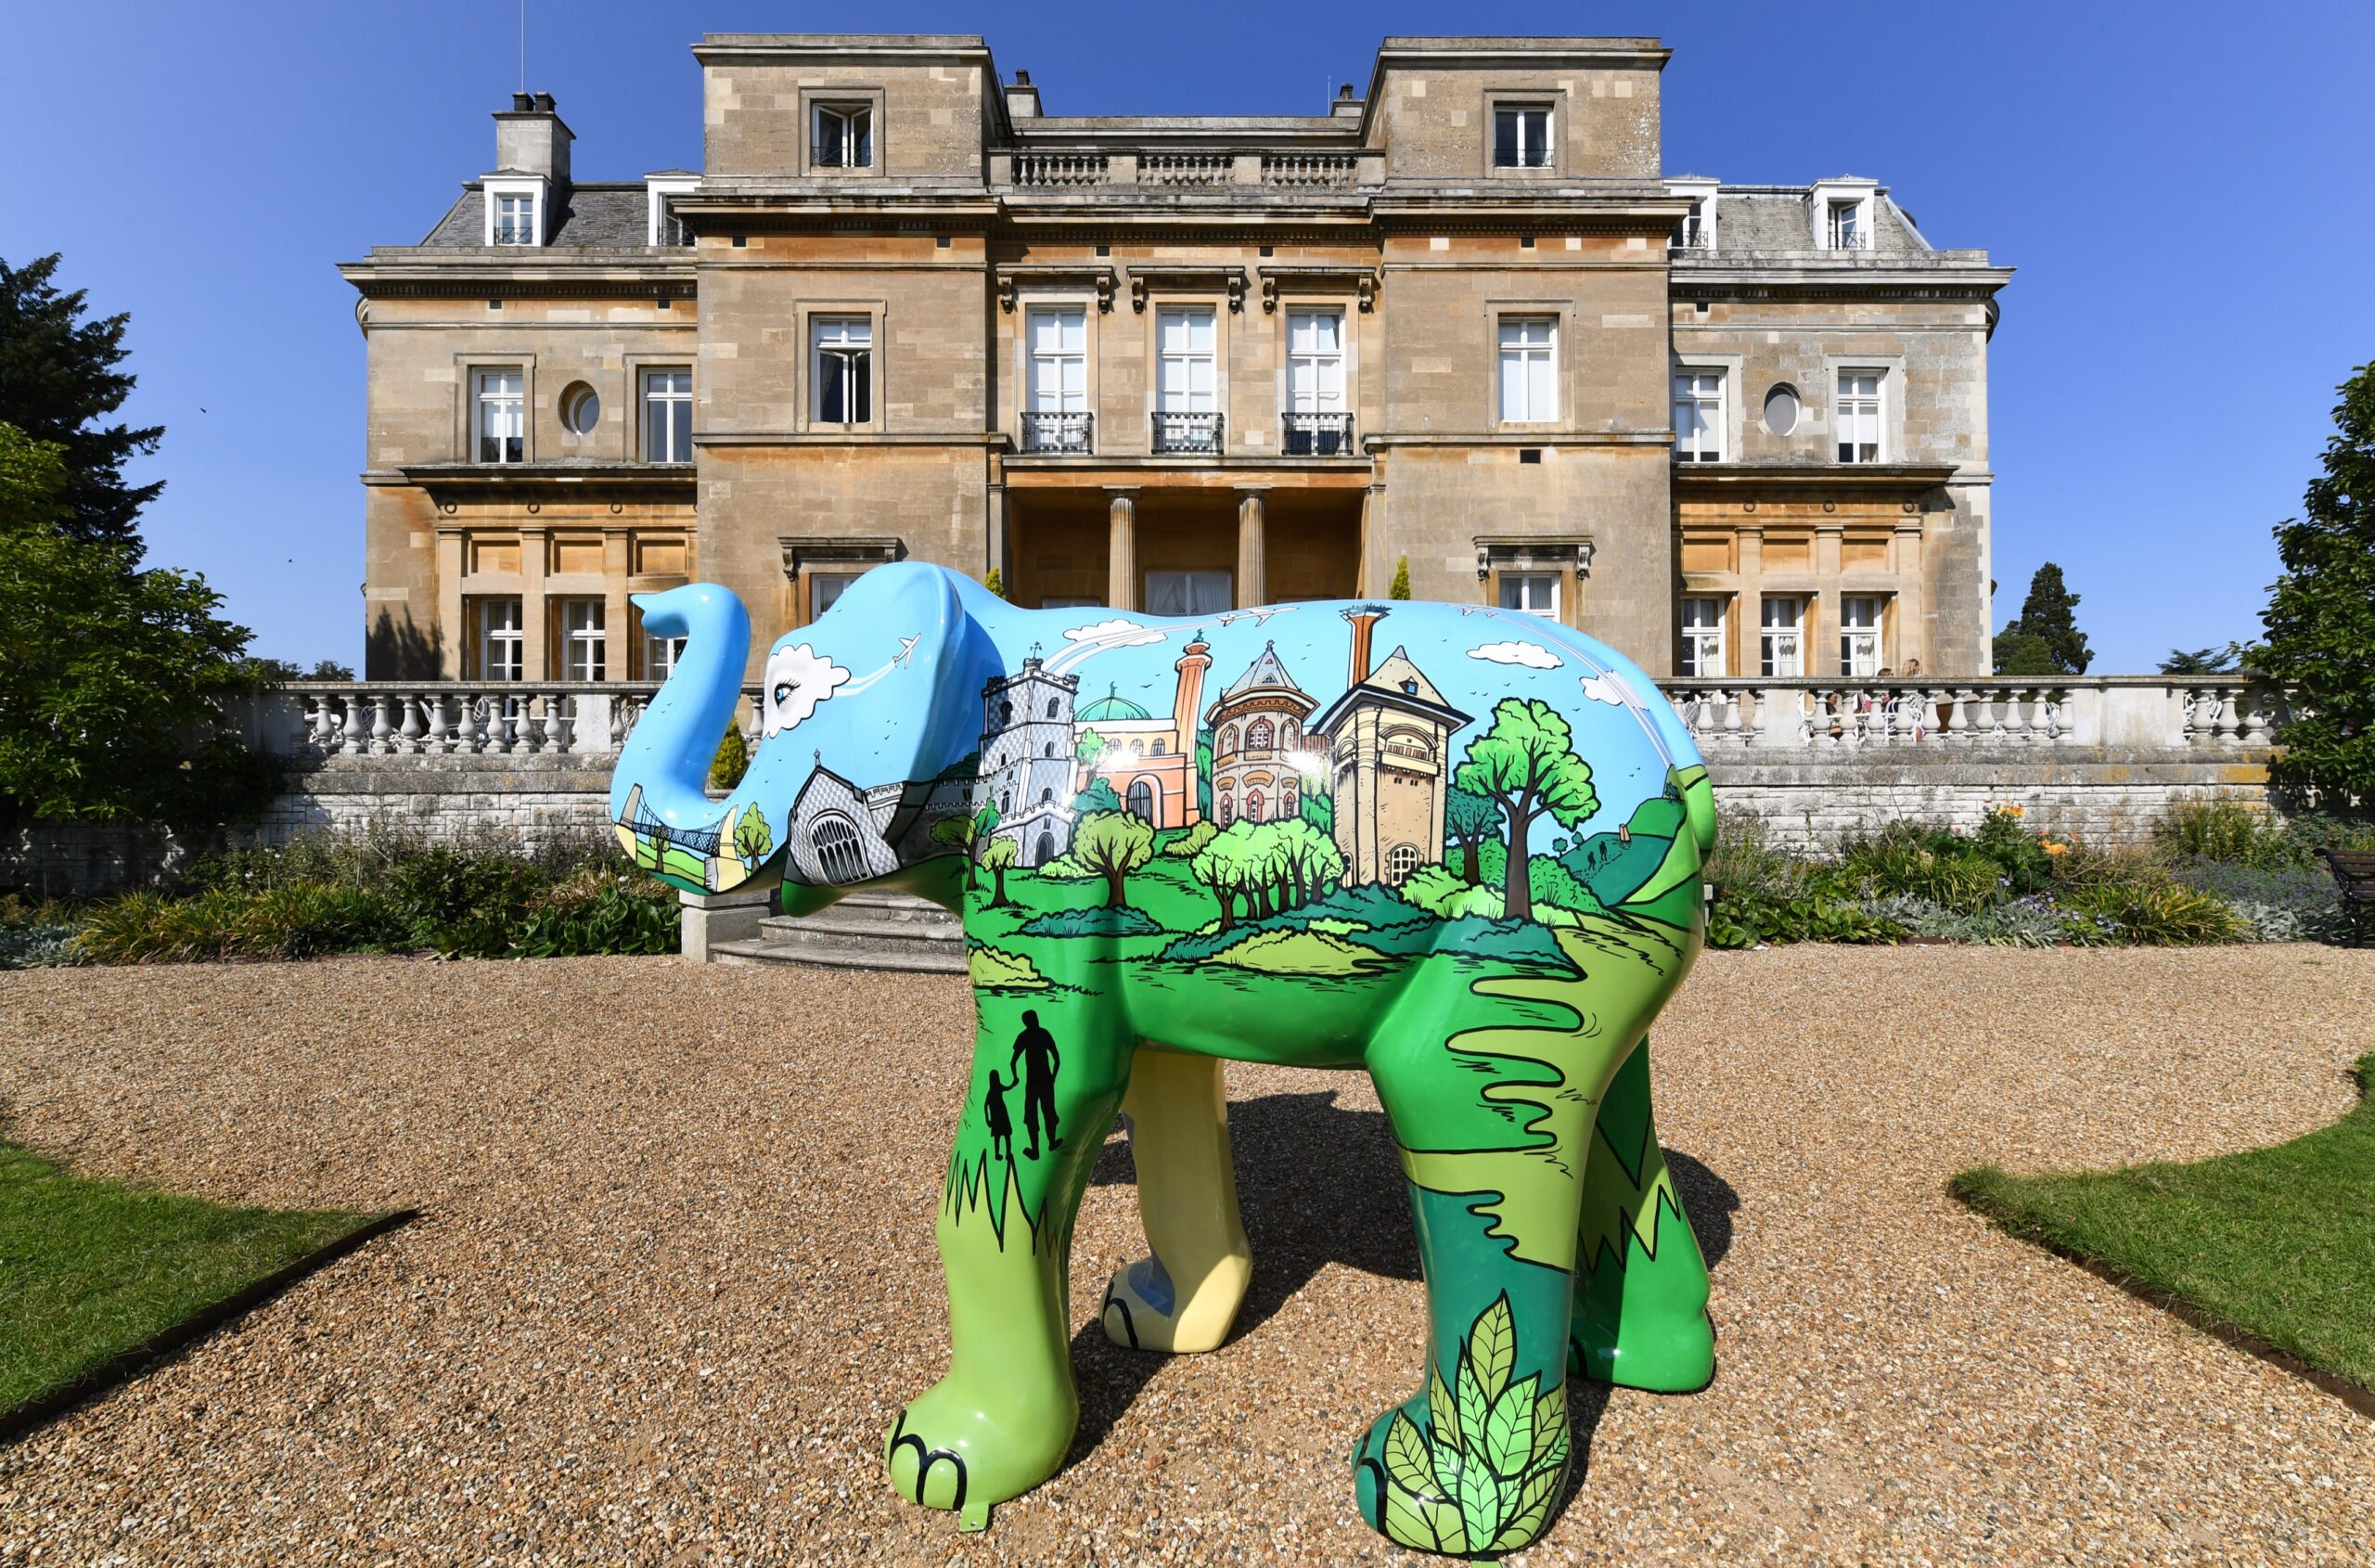 Elephant sculpture outside Luton Hoo. Copyright: Keech Hospice Care